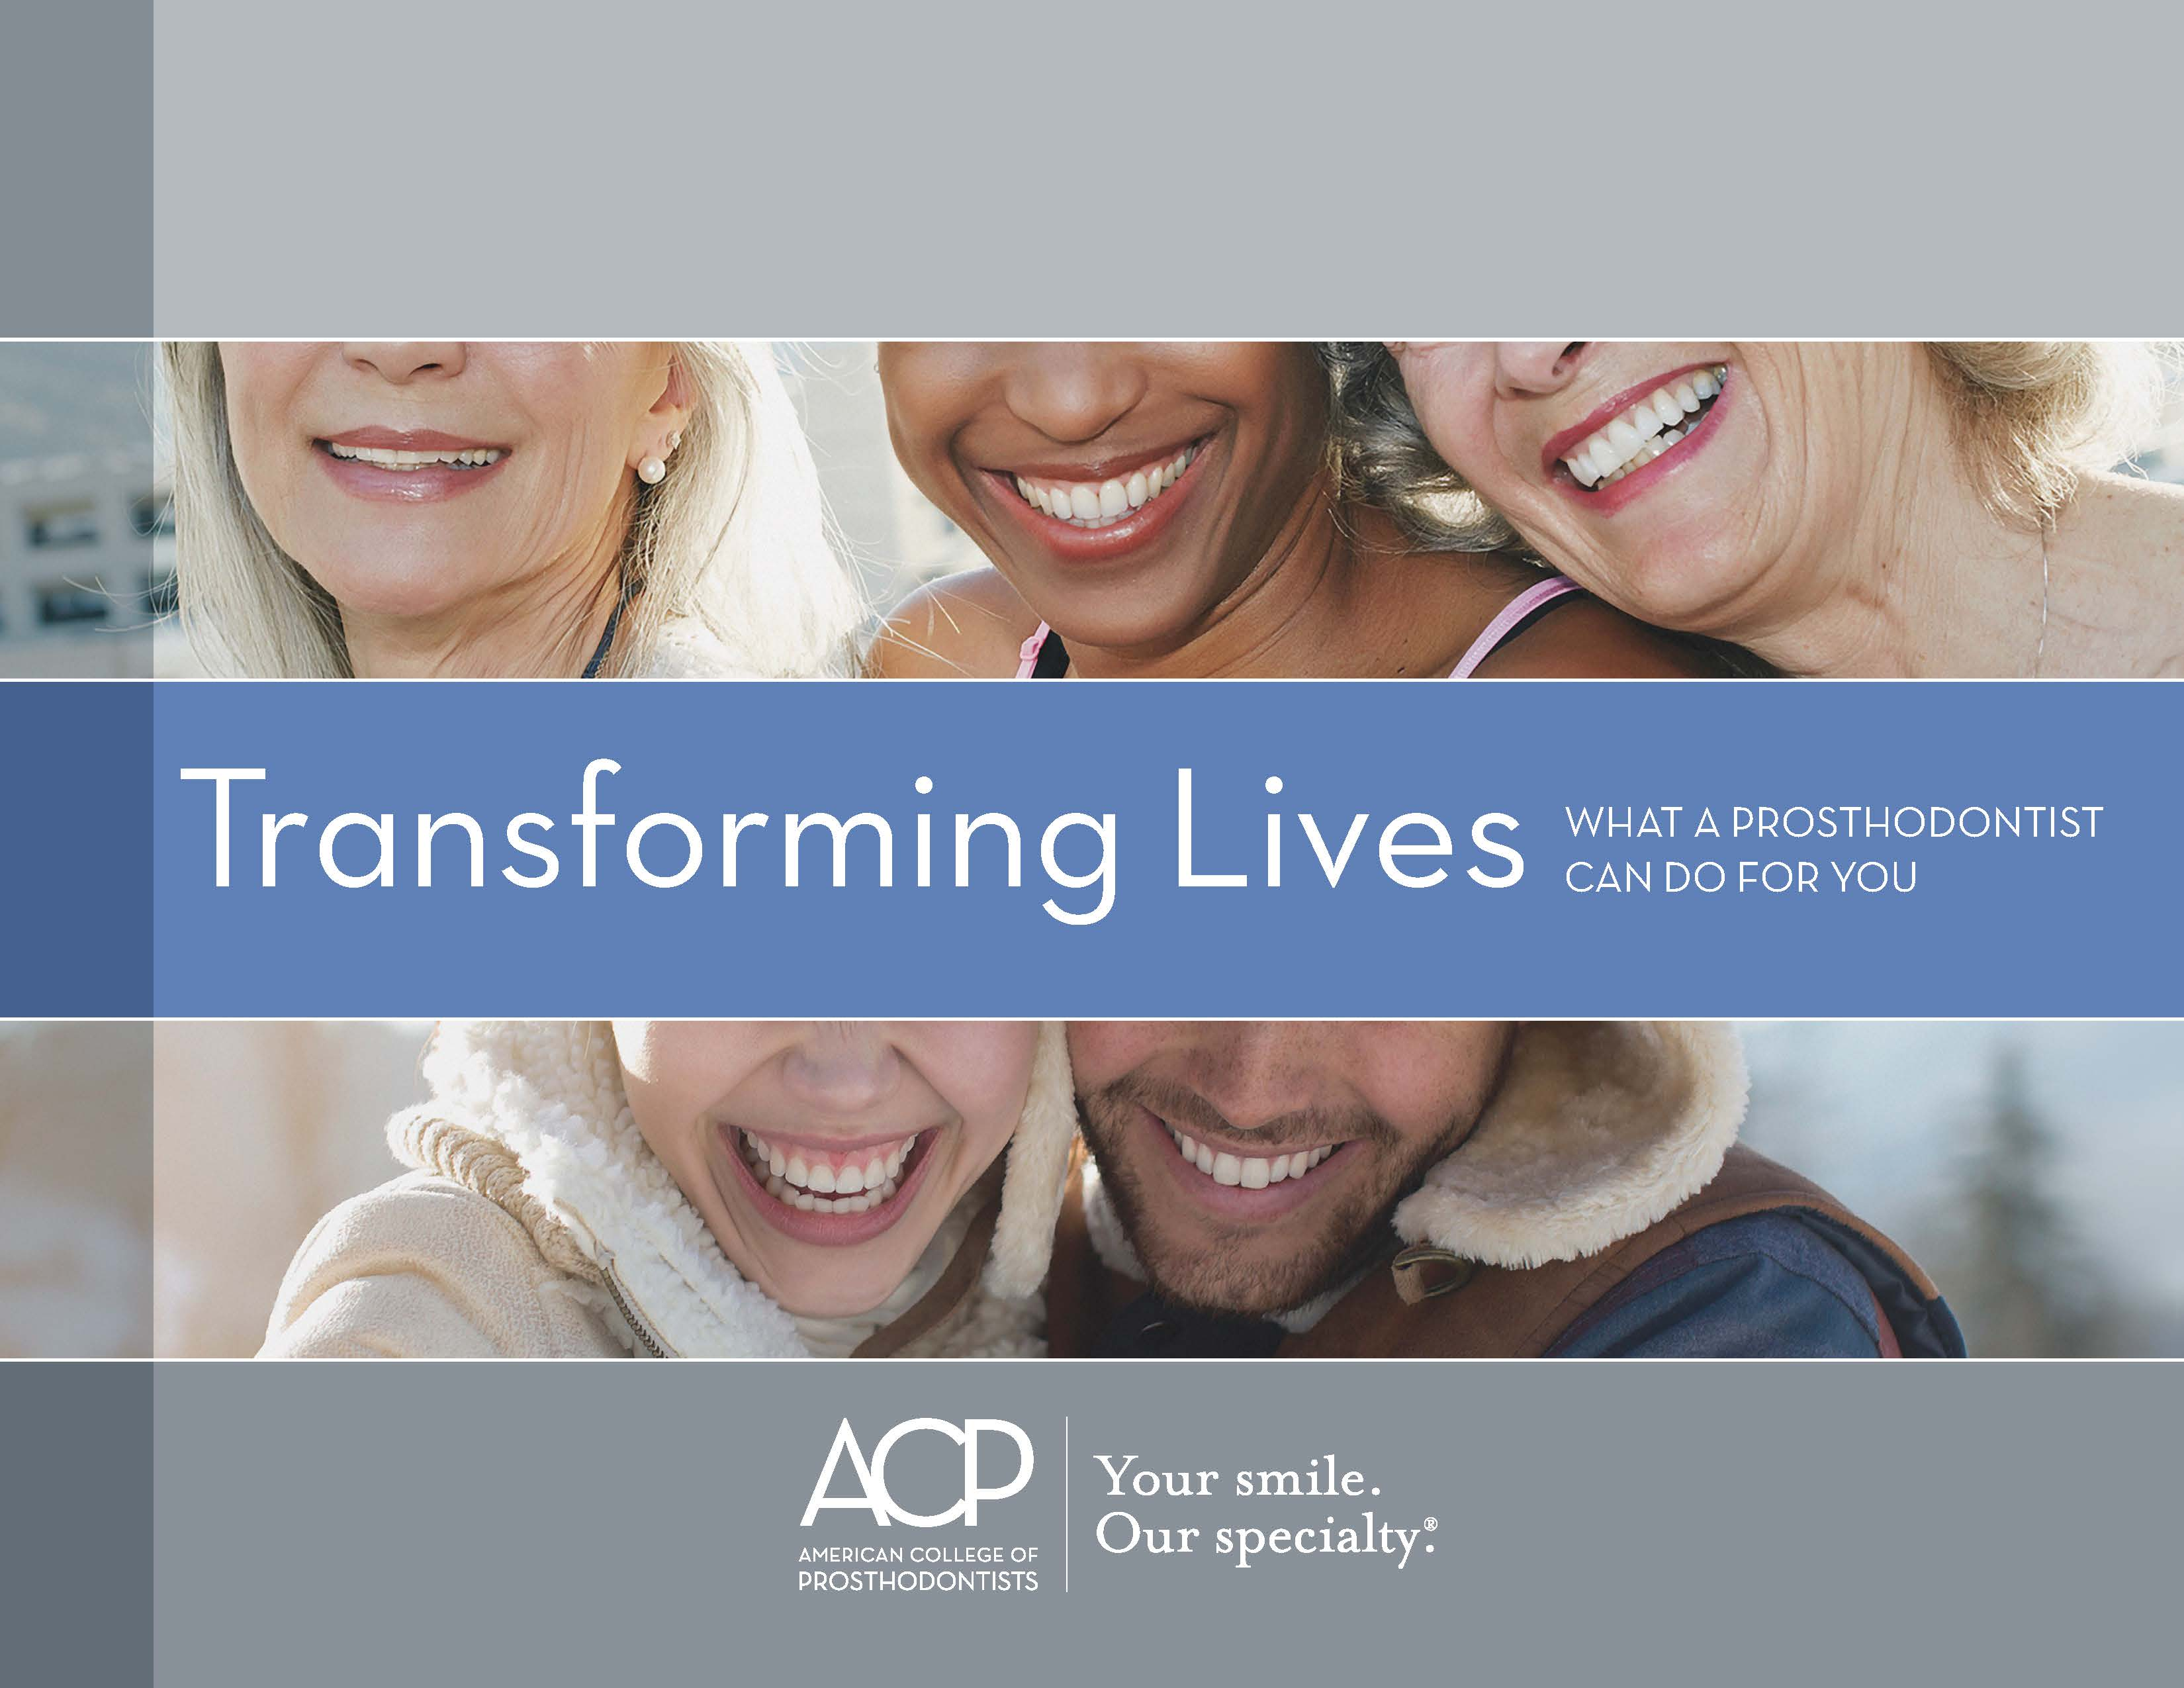 Transforming Lives: What a Prosthodontist Can Do For You